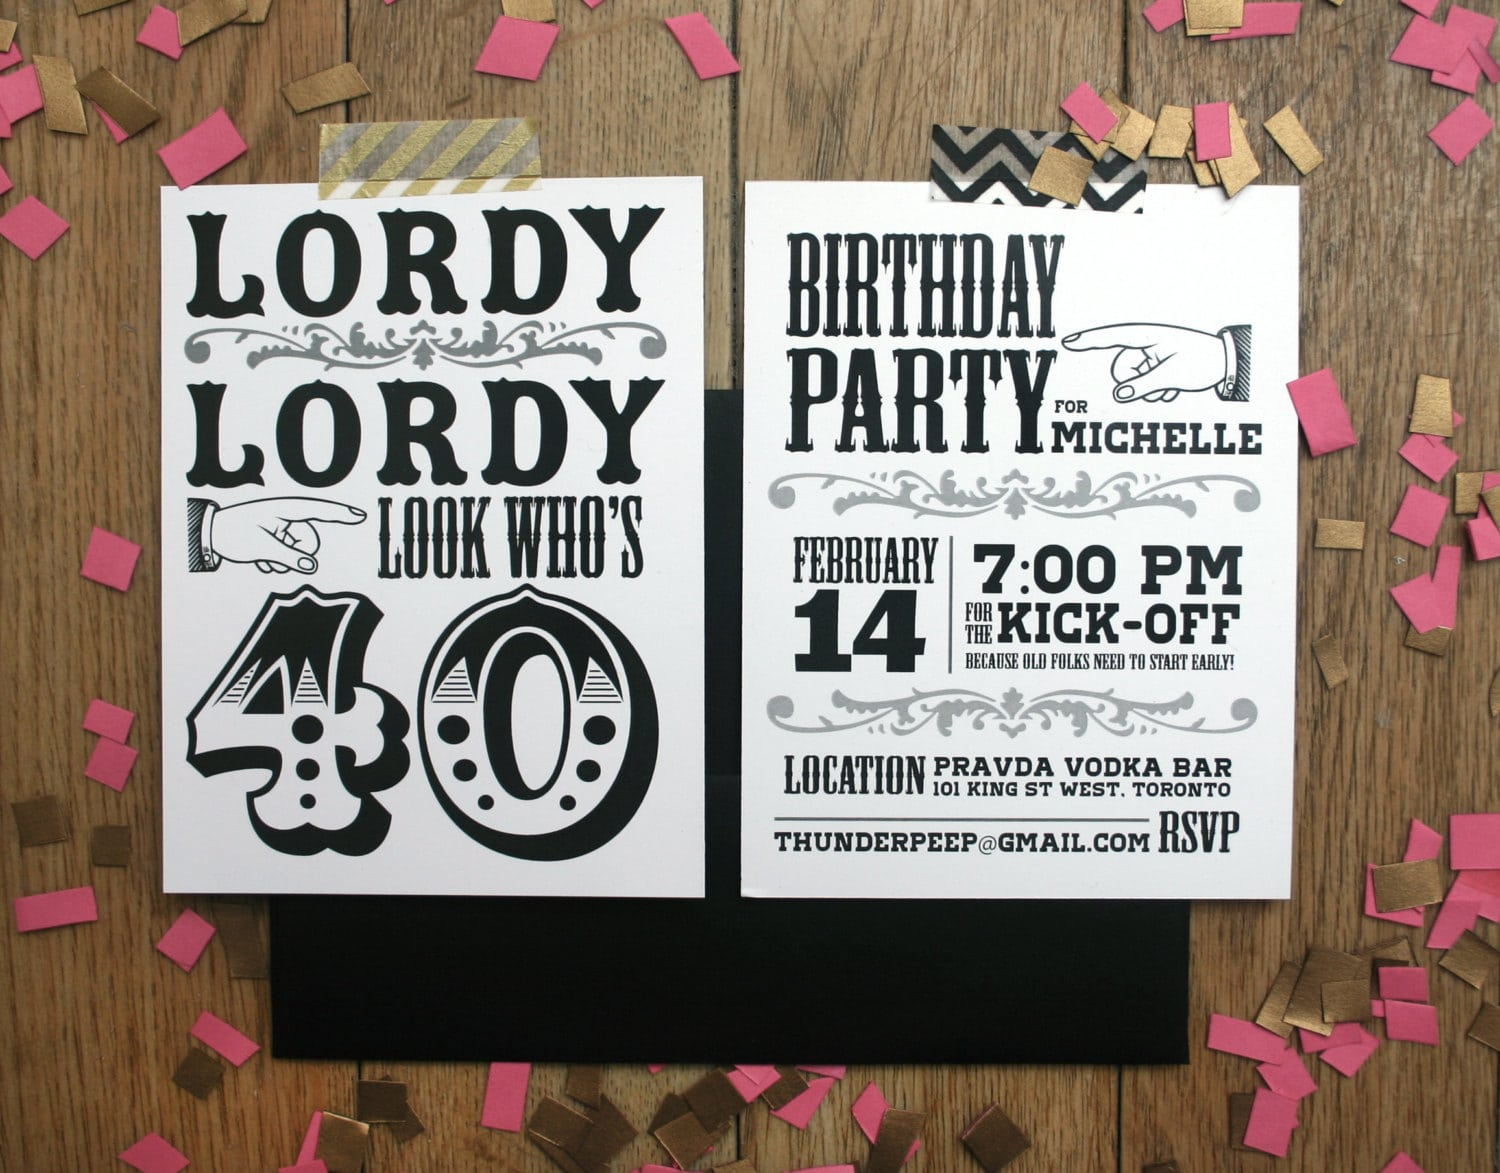 40th birthday party invitations for men mickey mouse invitations 40th birthday party invitations for him 40th birthday party invites free templates uk stopboris